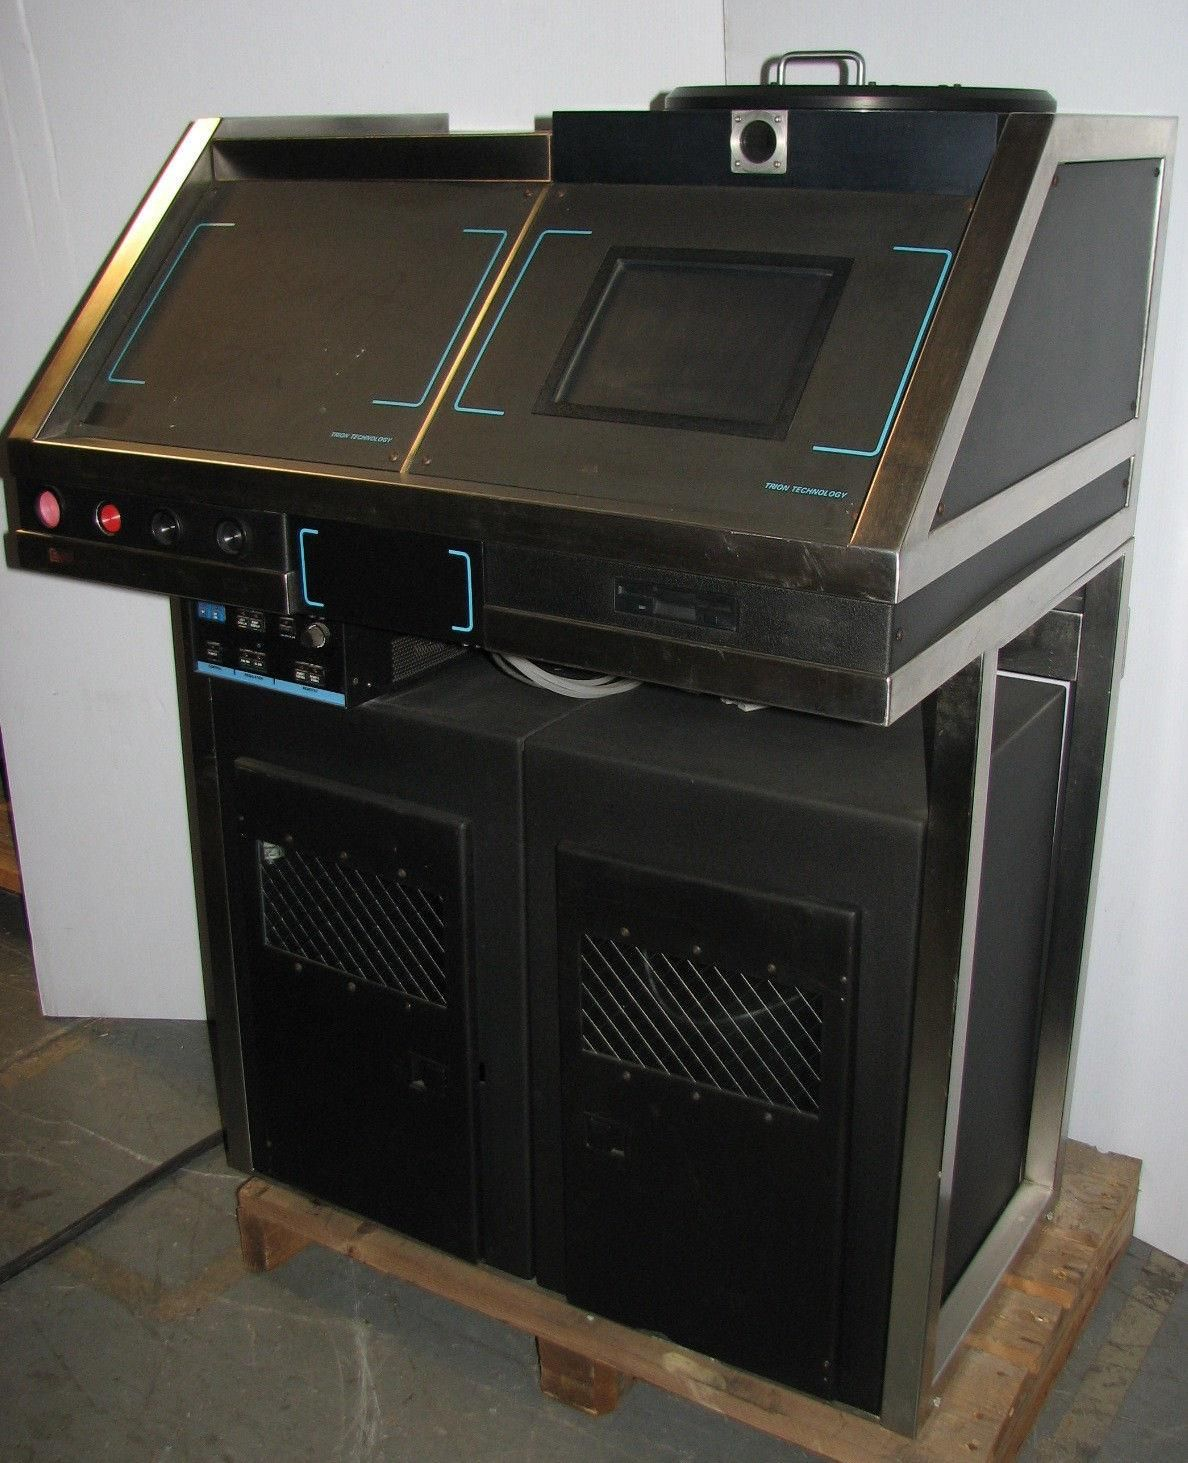 Trion Technology Plasma Etcher Deposition Wafer With RFX 600 Advanced Energy